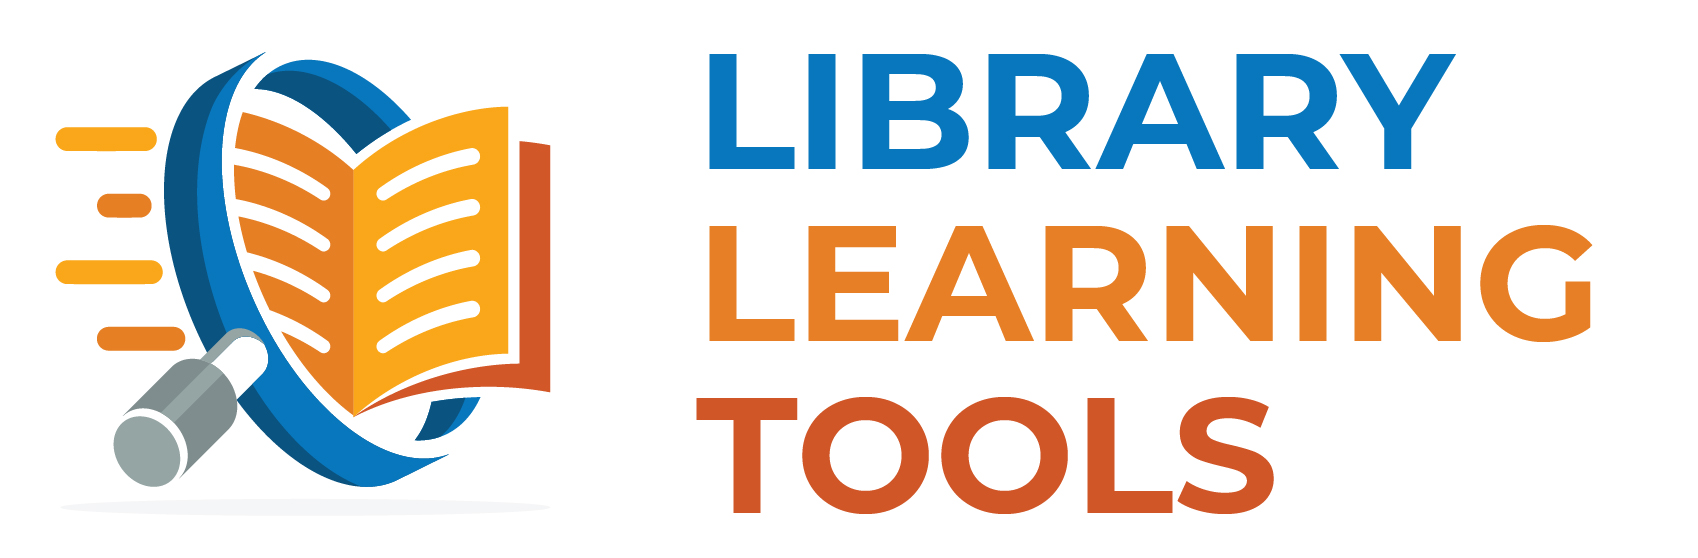 Library Learning Tools Contra Costa County Library